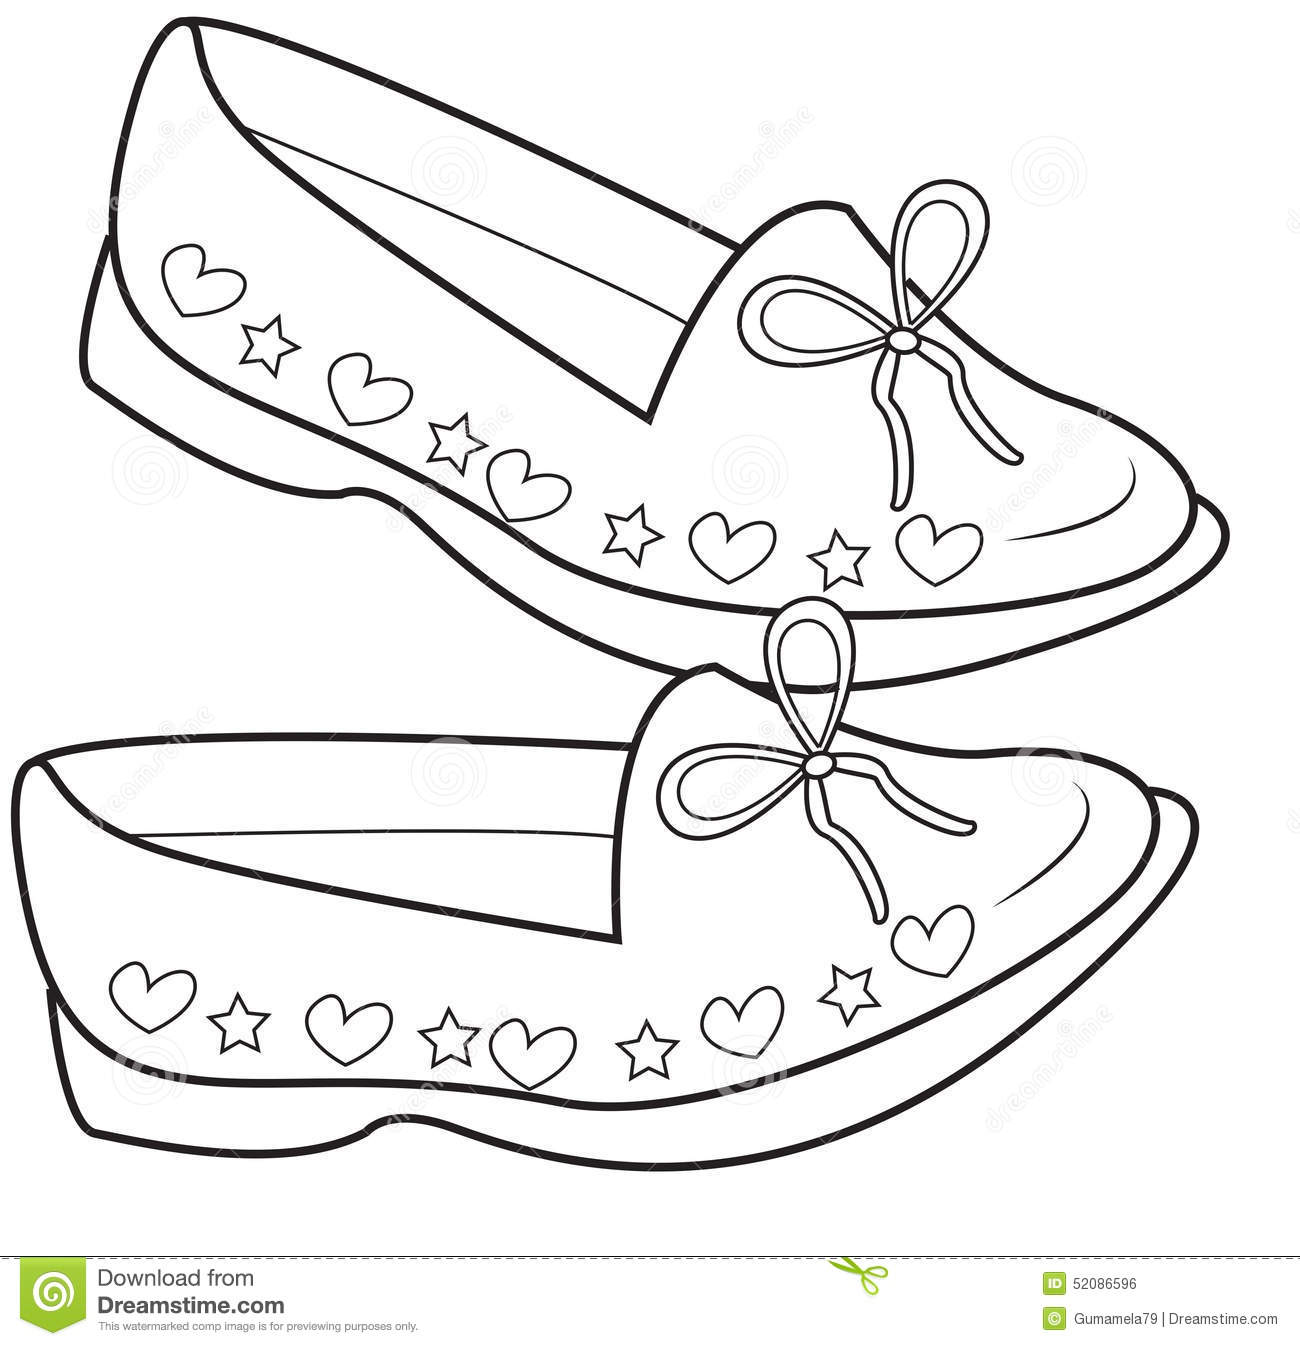 Coloring pages shoes - Book Coloring Kids Lady Page Shoes